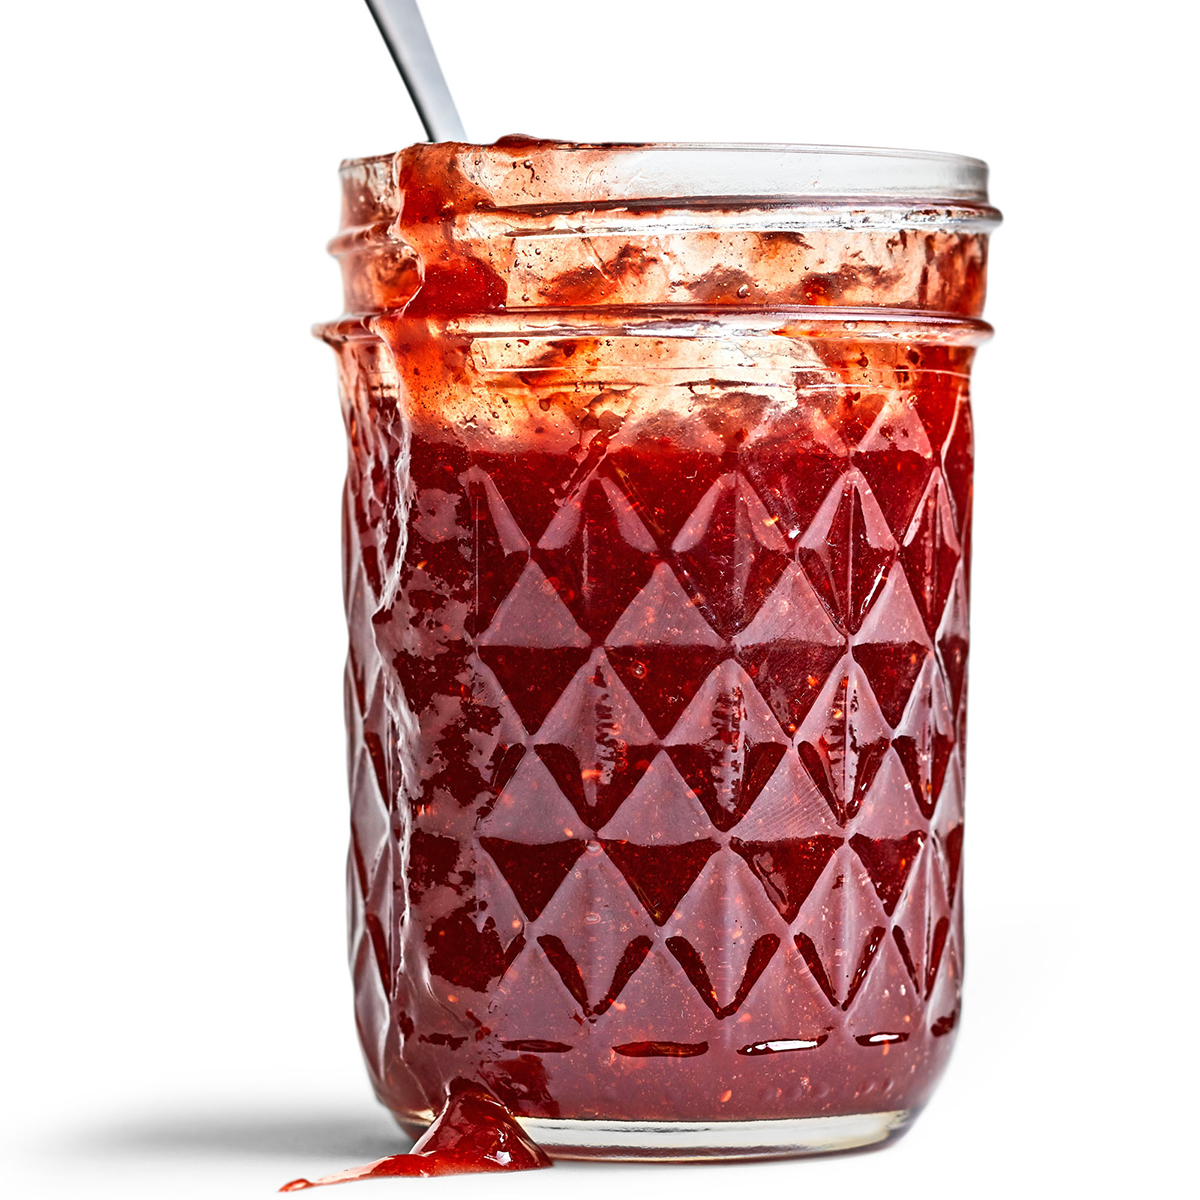 red berry jam in glass jar